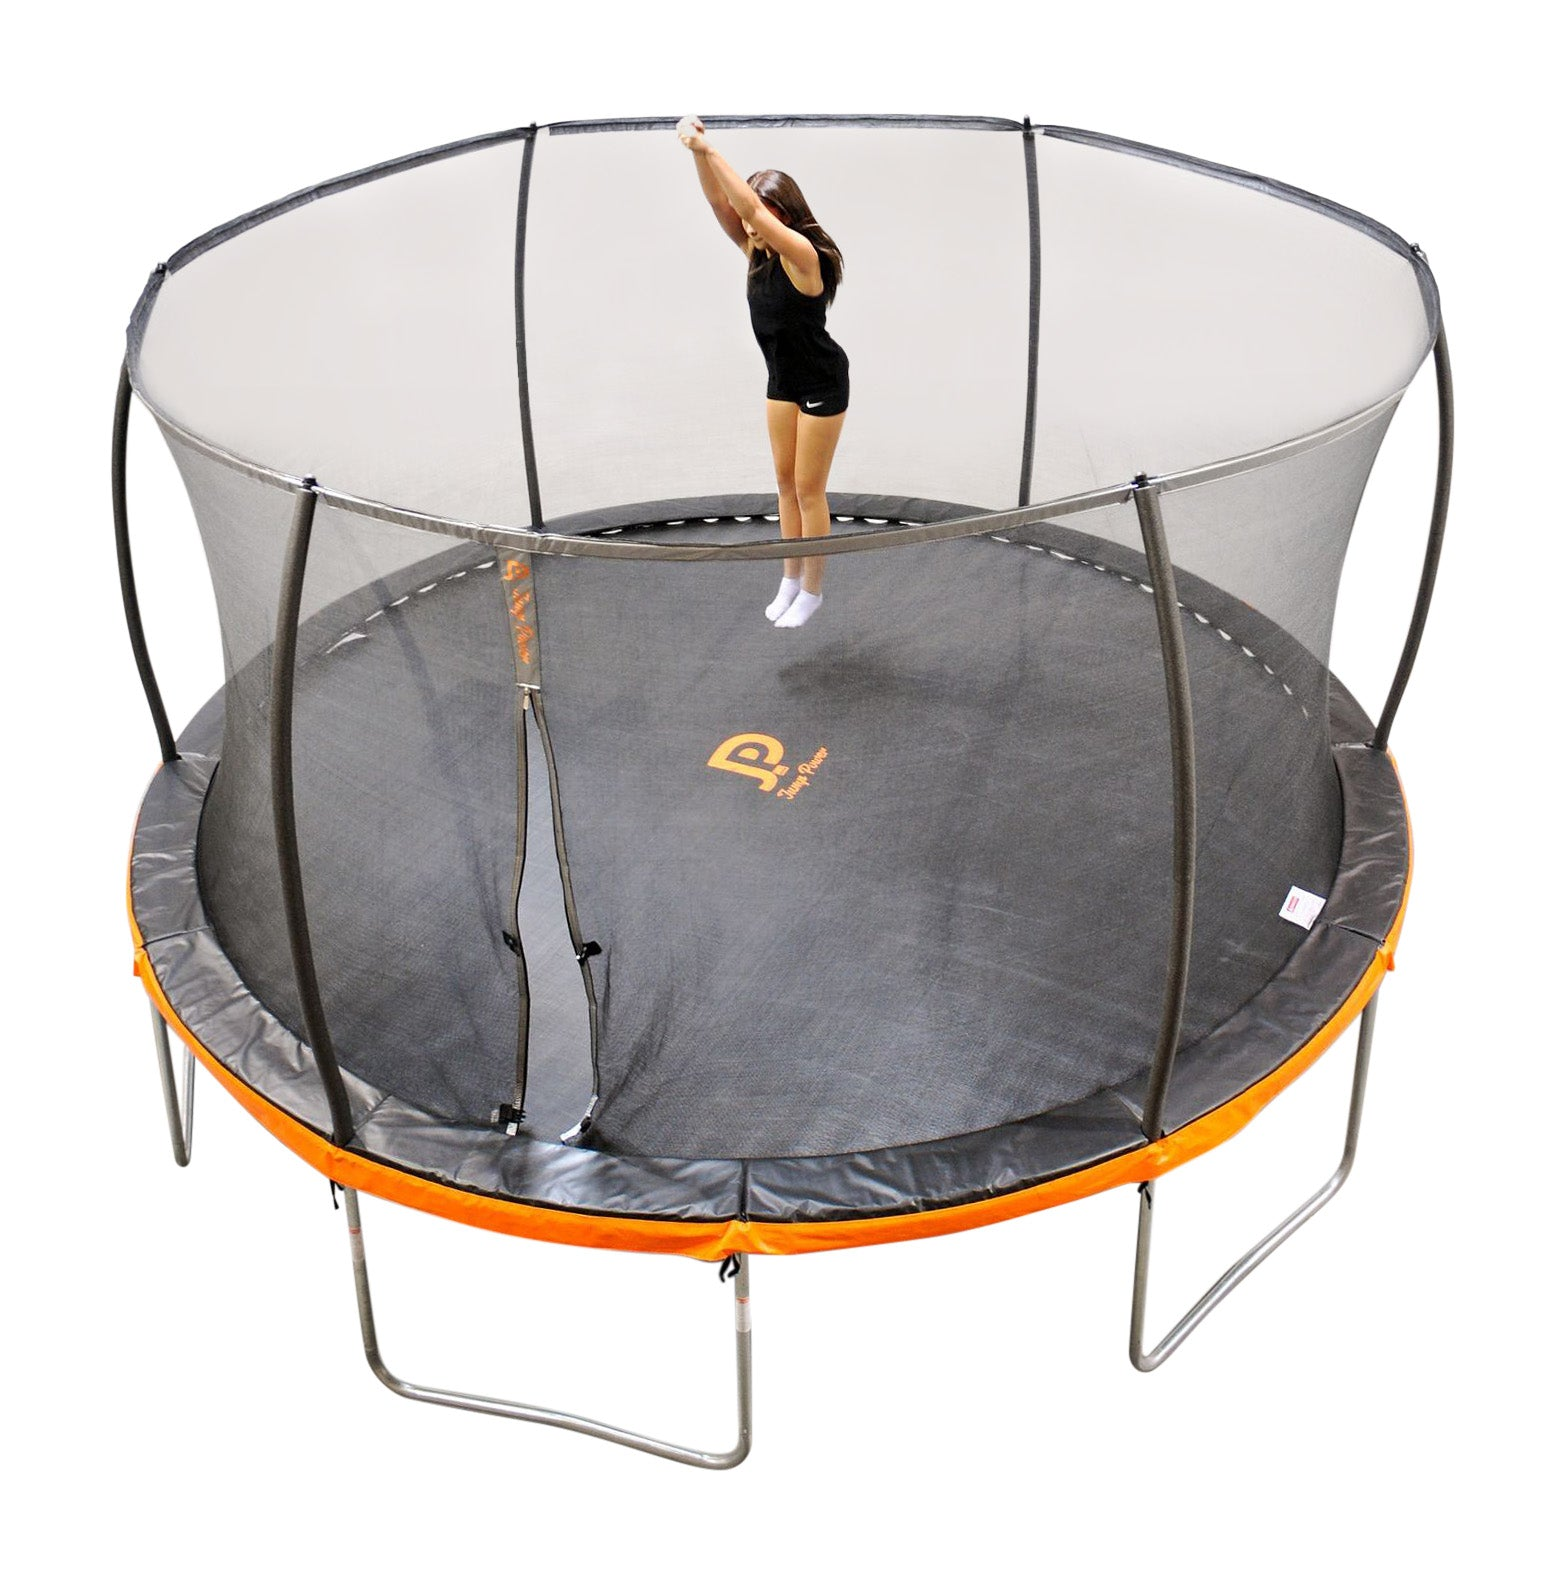 Jump Power 12-Foot Round Modern Trampoline & Safety Net Enclosure Combo